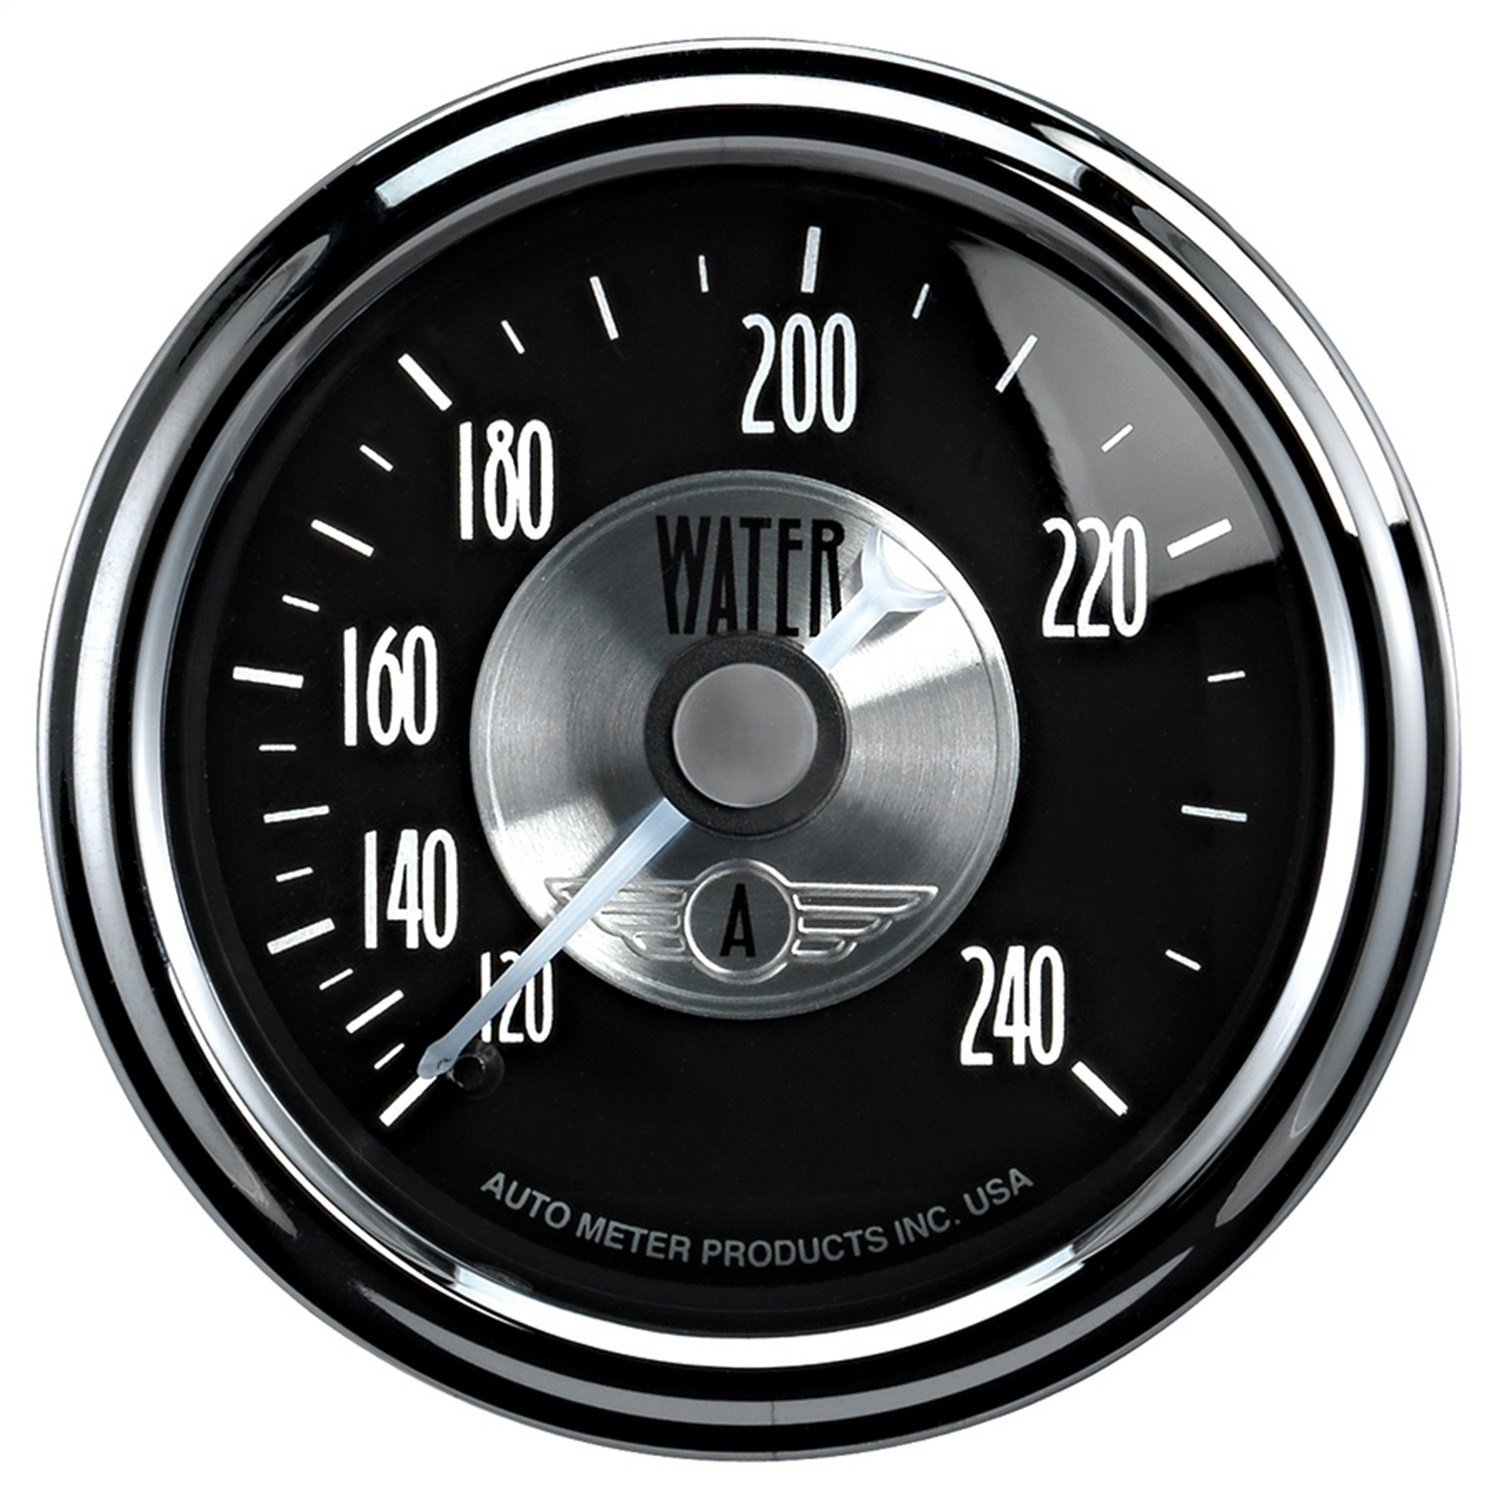 Auto Meter 2033 Prestige Black 2-1/16' 120-240 Degree Mechanical Water Temperature Gauge